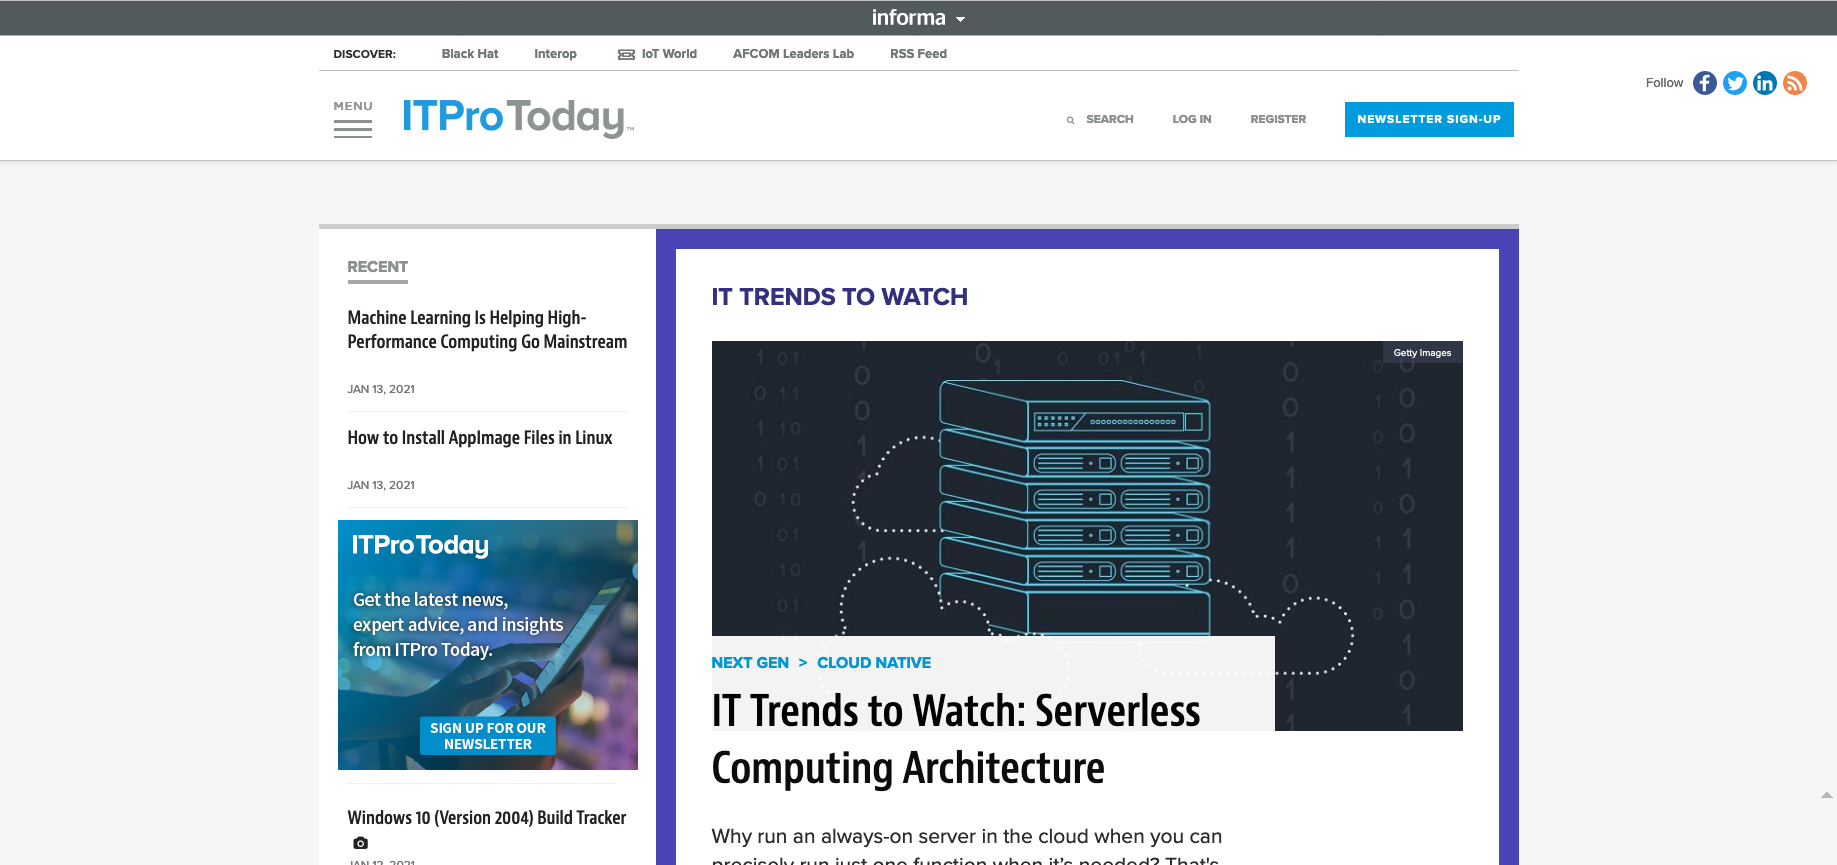 ITPro Today - IT Trends to Watch: Serverless Computing Architecture